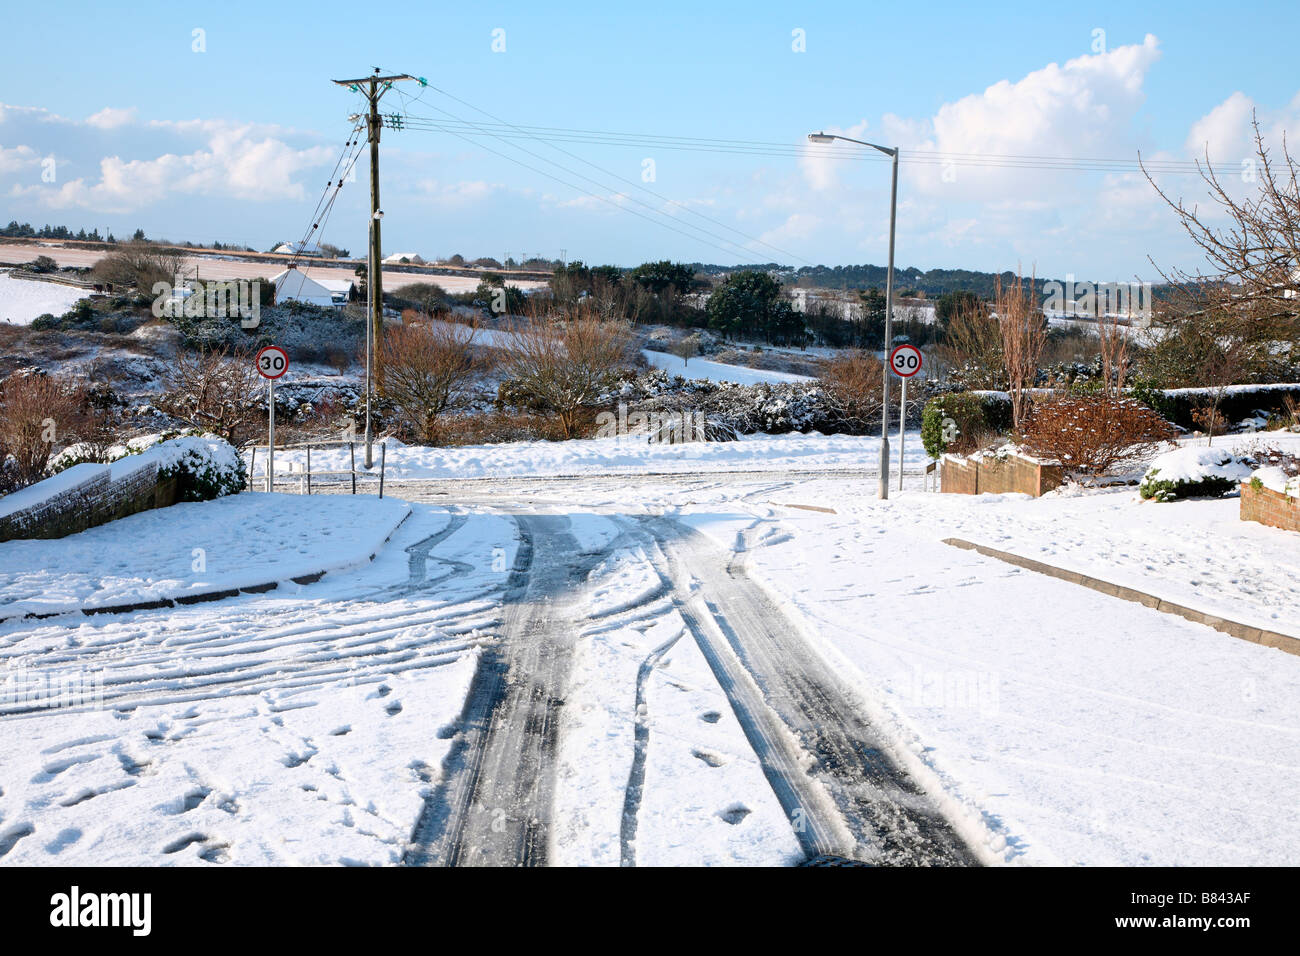 Snow and ice on a road in a housing estate in Cornwall UK. - Stock Image